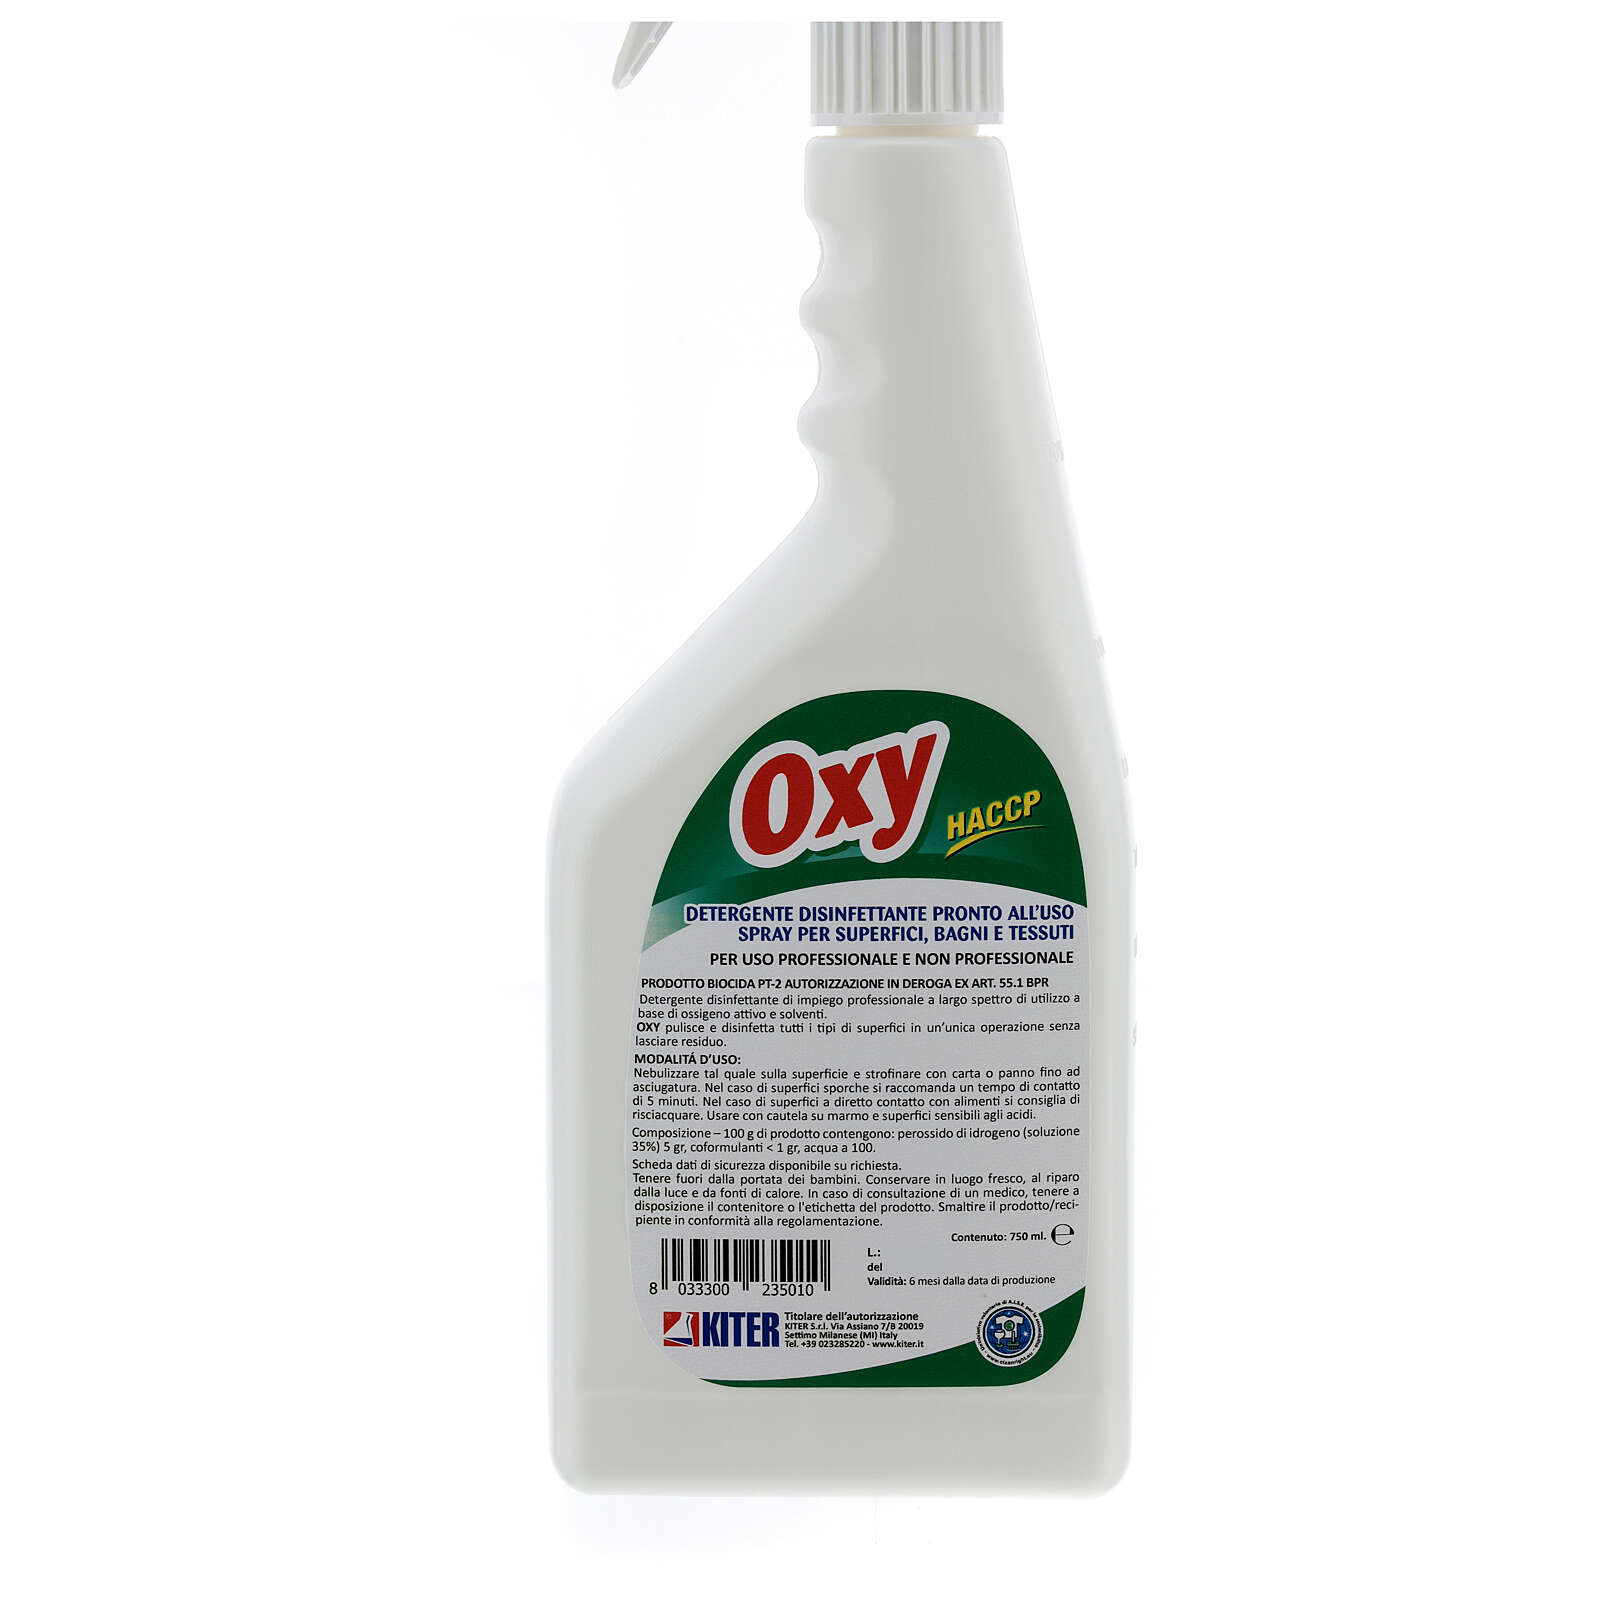 Disinfectant spray, Oxy Biocide 750 ml 3